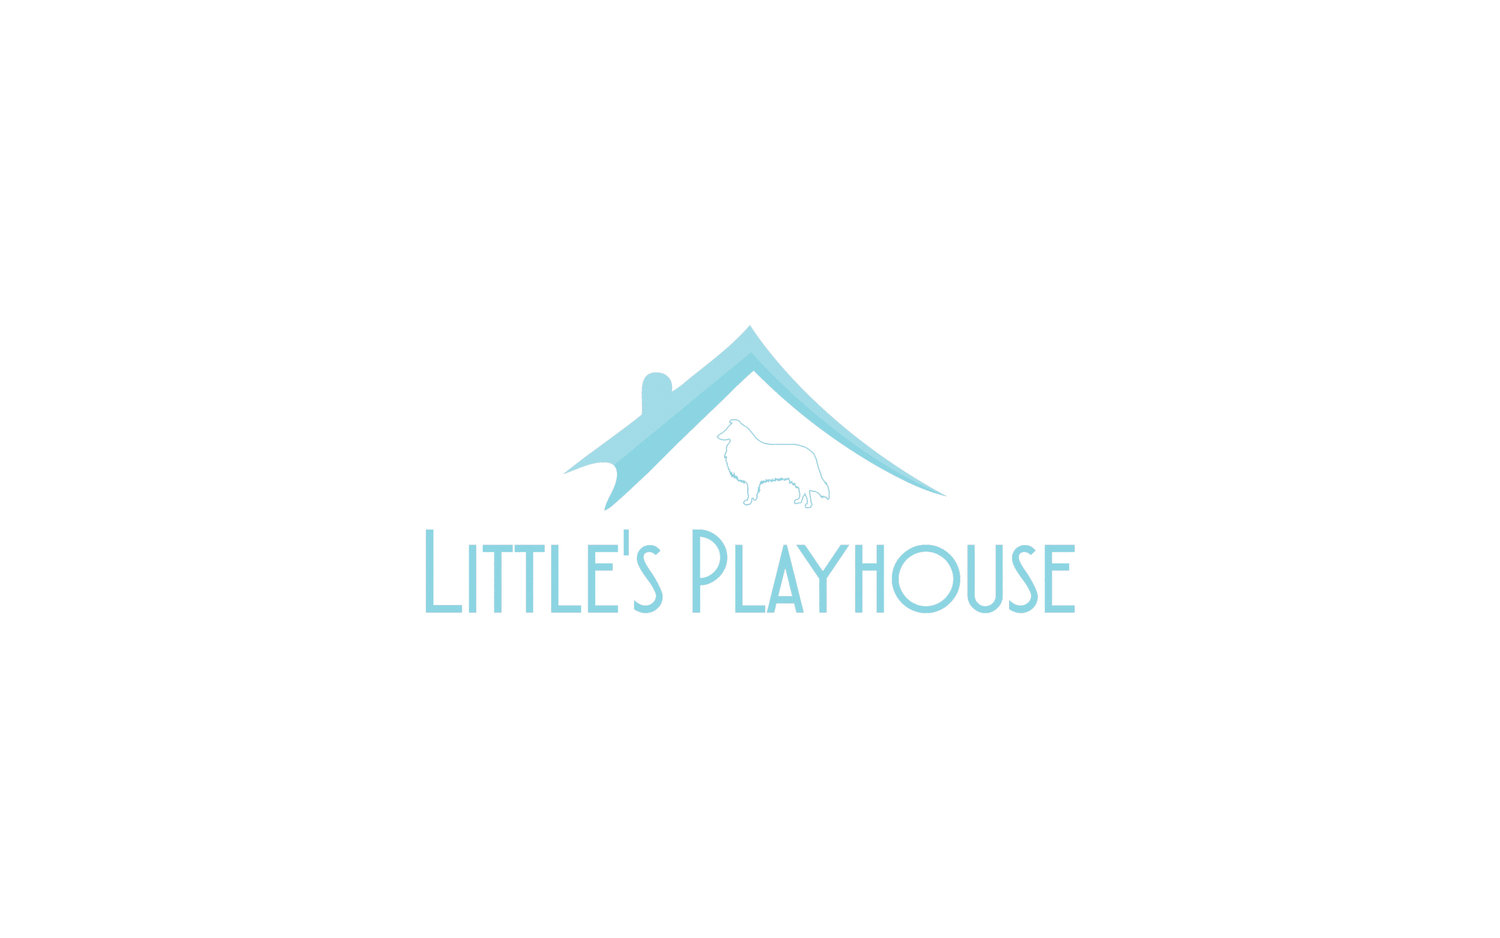 Little's Playhouse